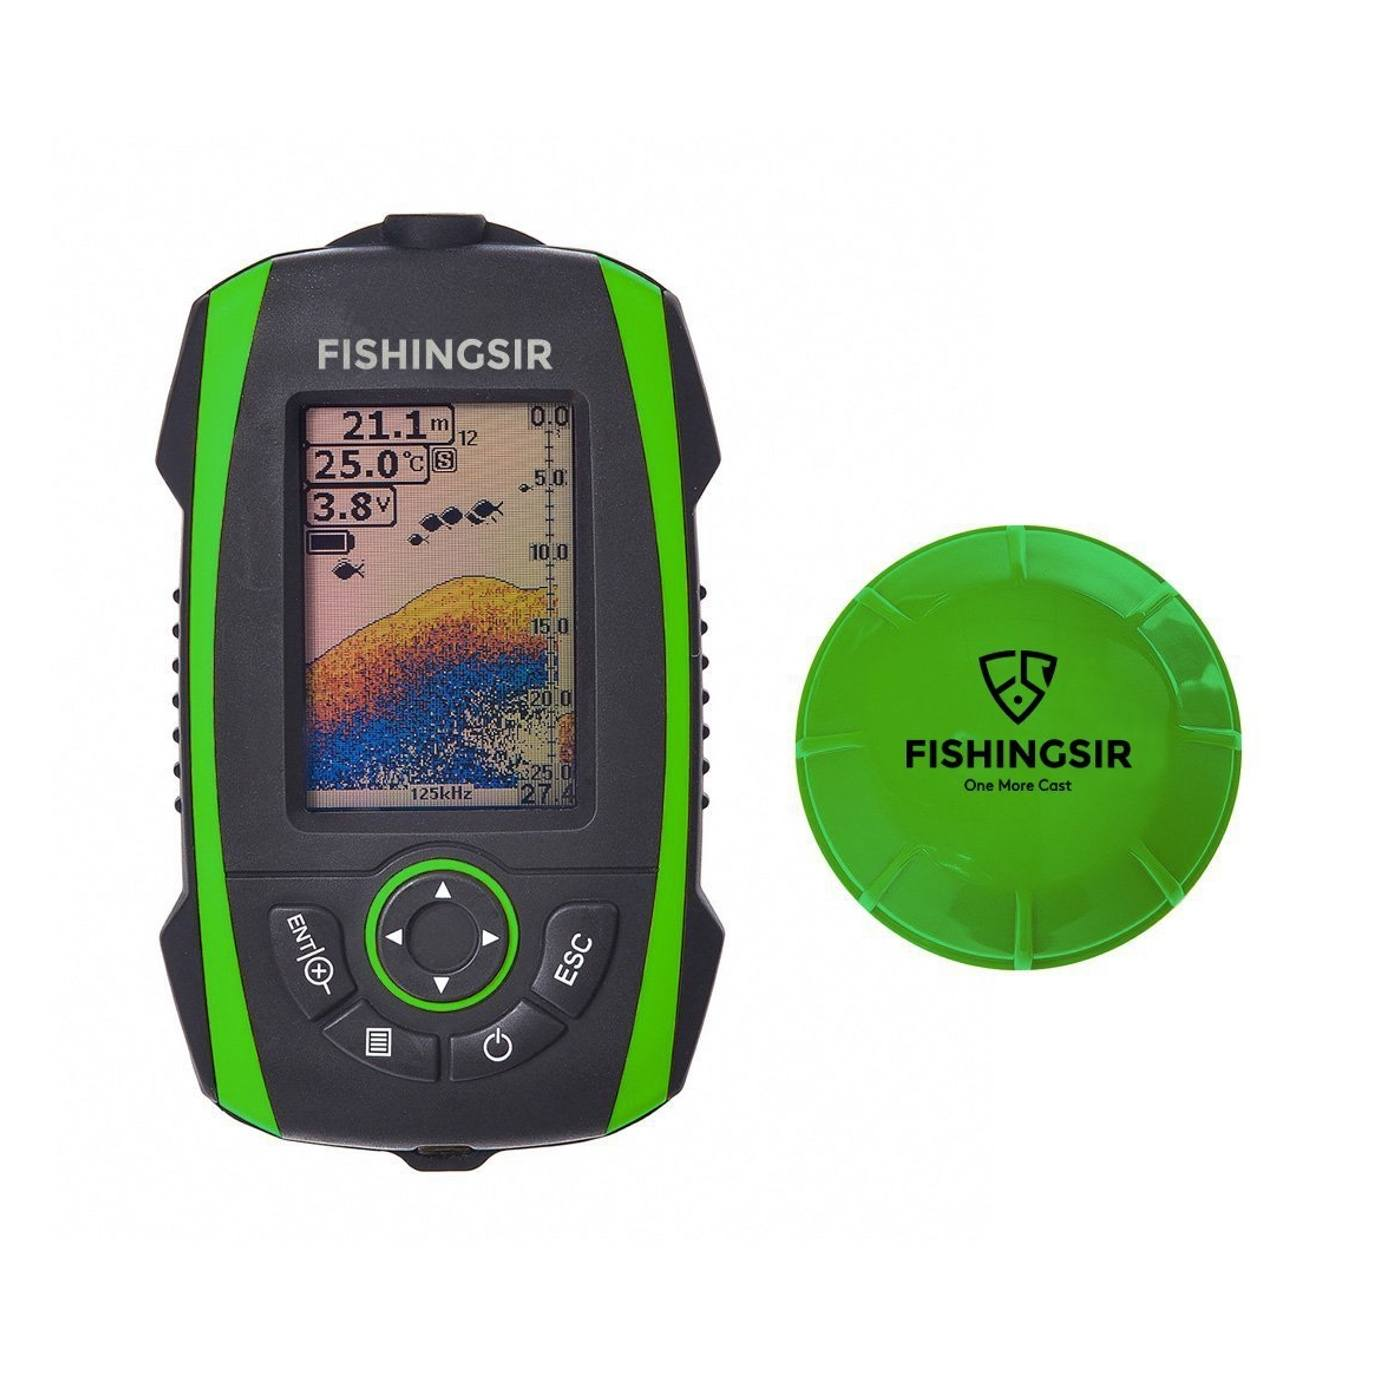 Wireless Portable Fish Finder Fishfinder with Sonar